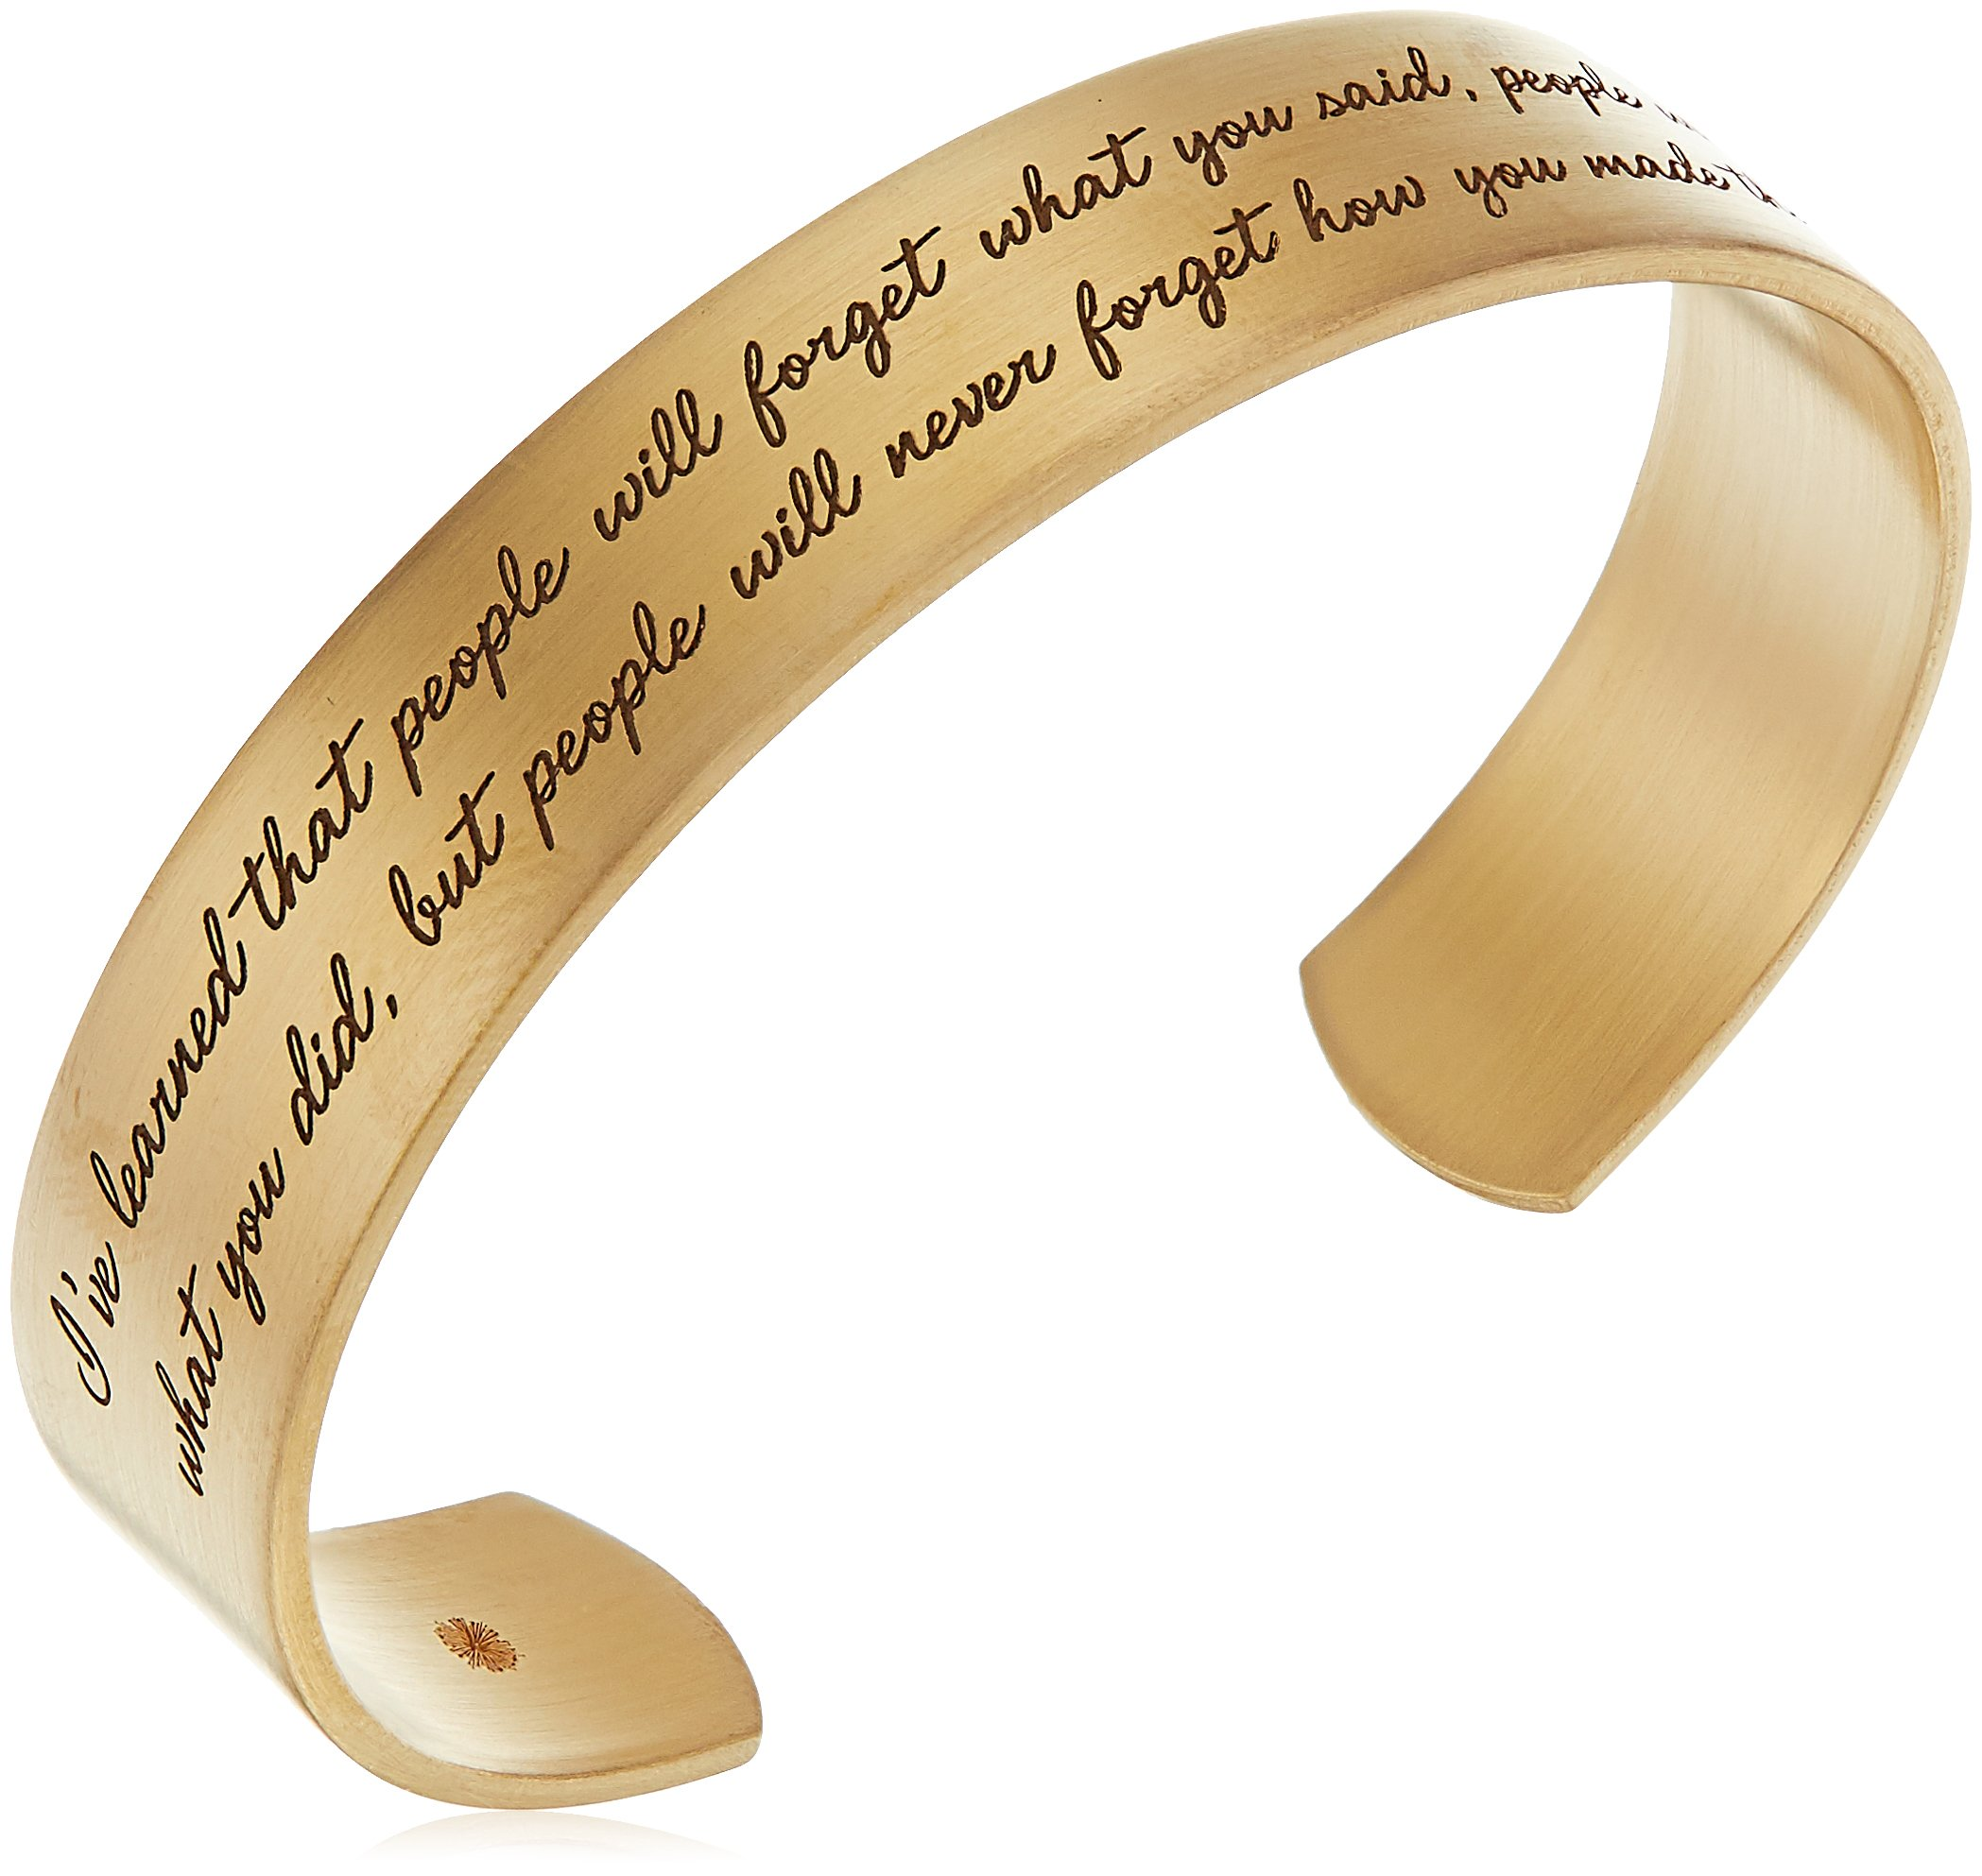 Dogeared ''Maya Angelou'' I've Learned That People Will Forget What You Said Medium Engraved Gold Cuff Bracelet